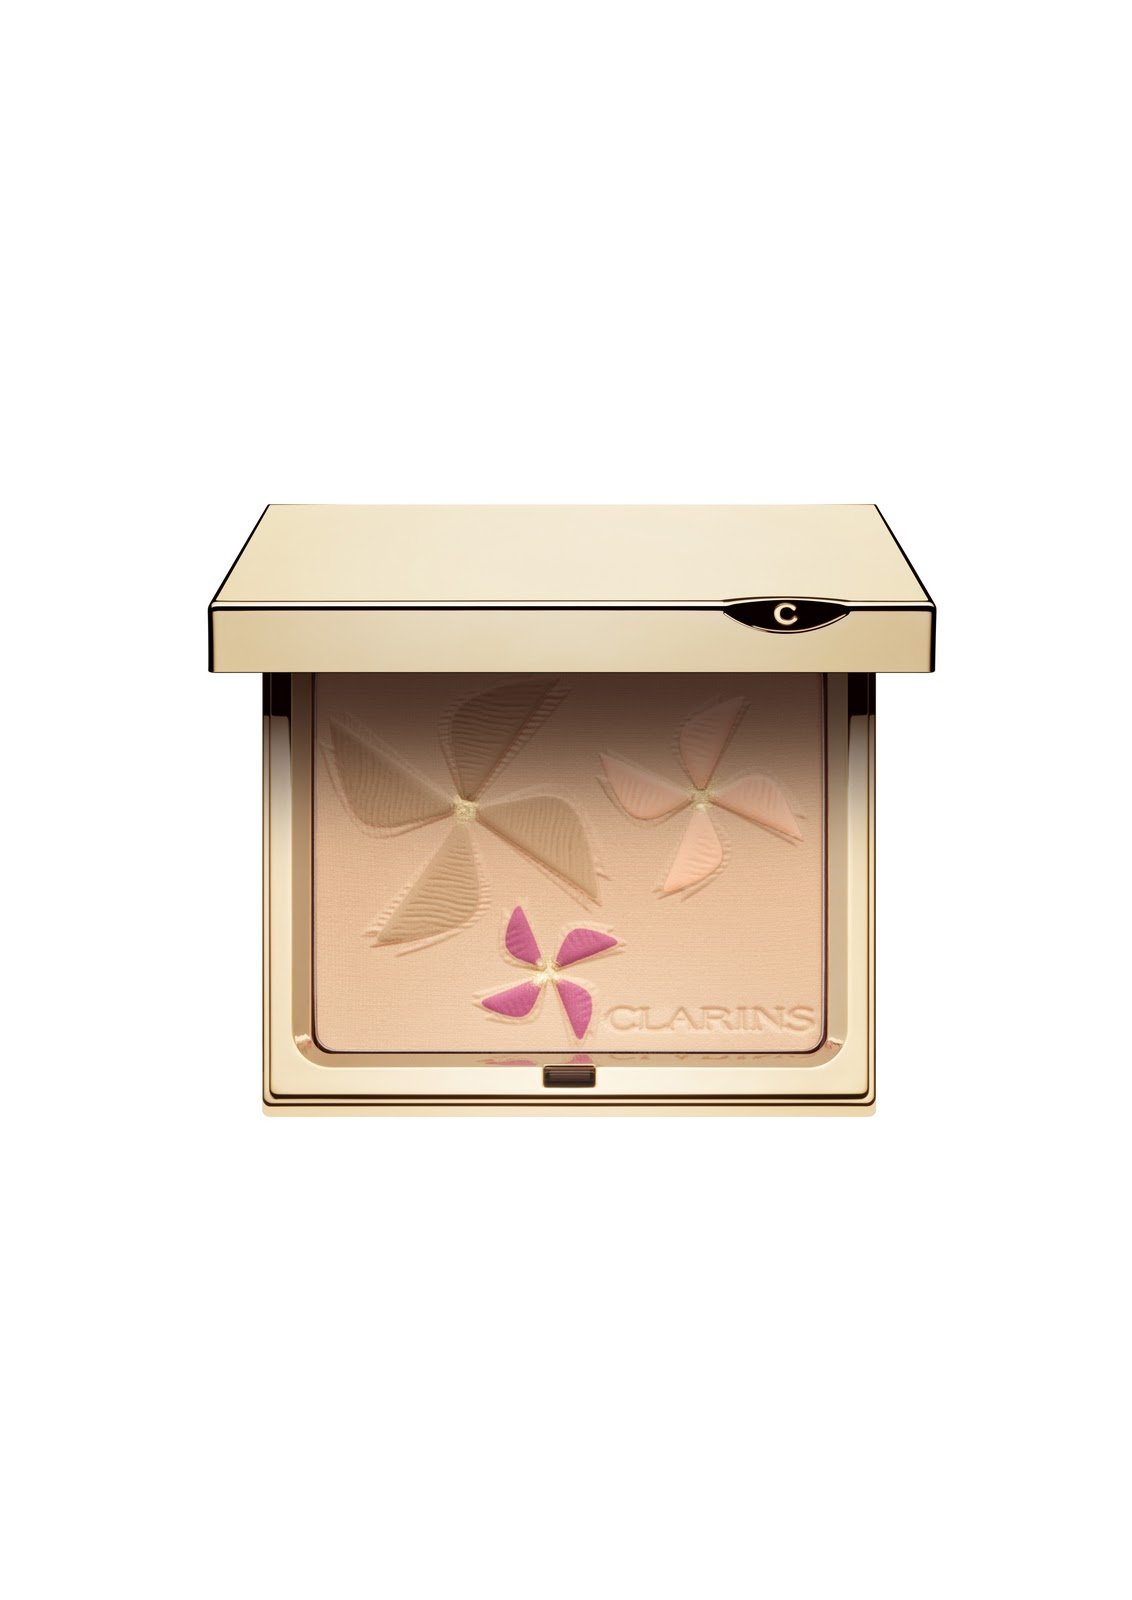 Clarins Colour Definition Fall 2011 Makeup Collection: Clarins Colour Breeze Spring 2012